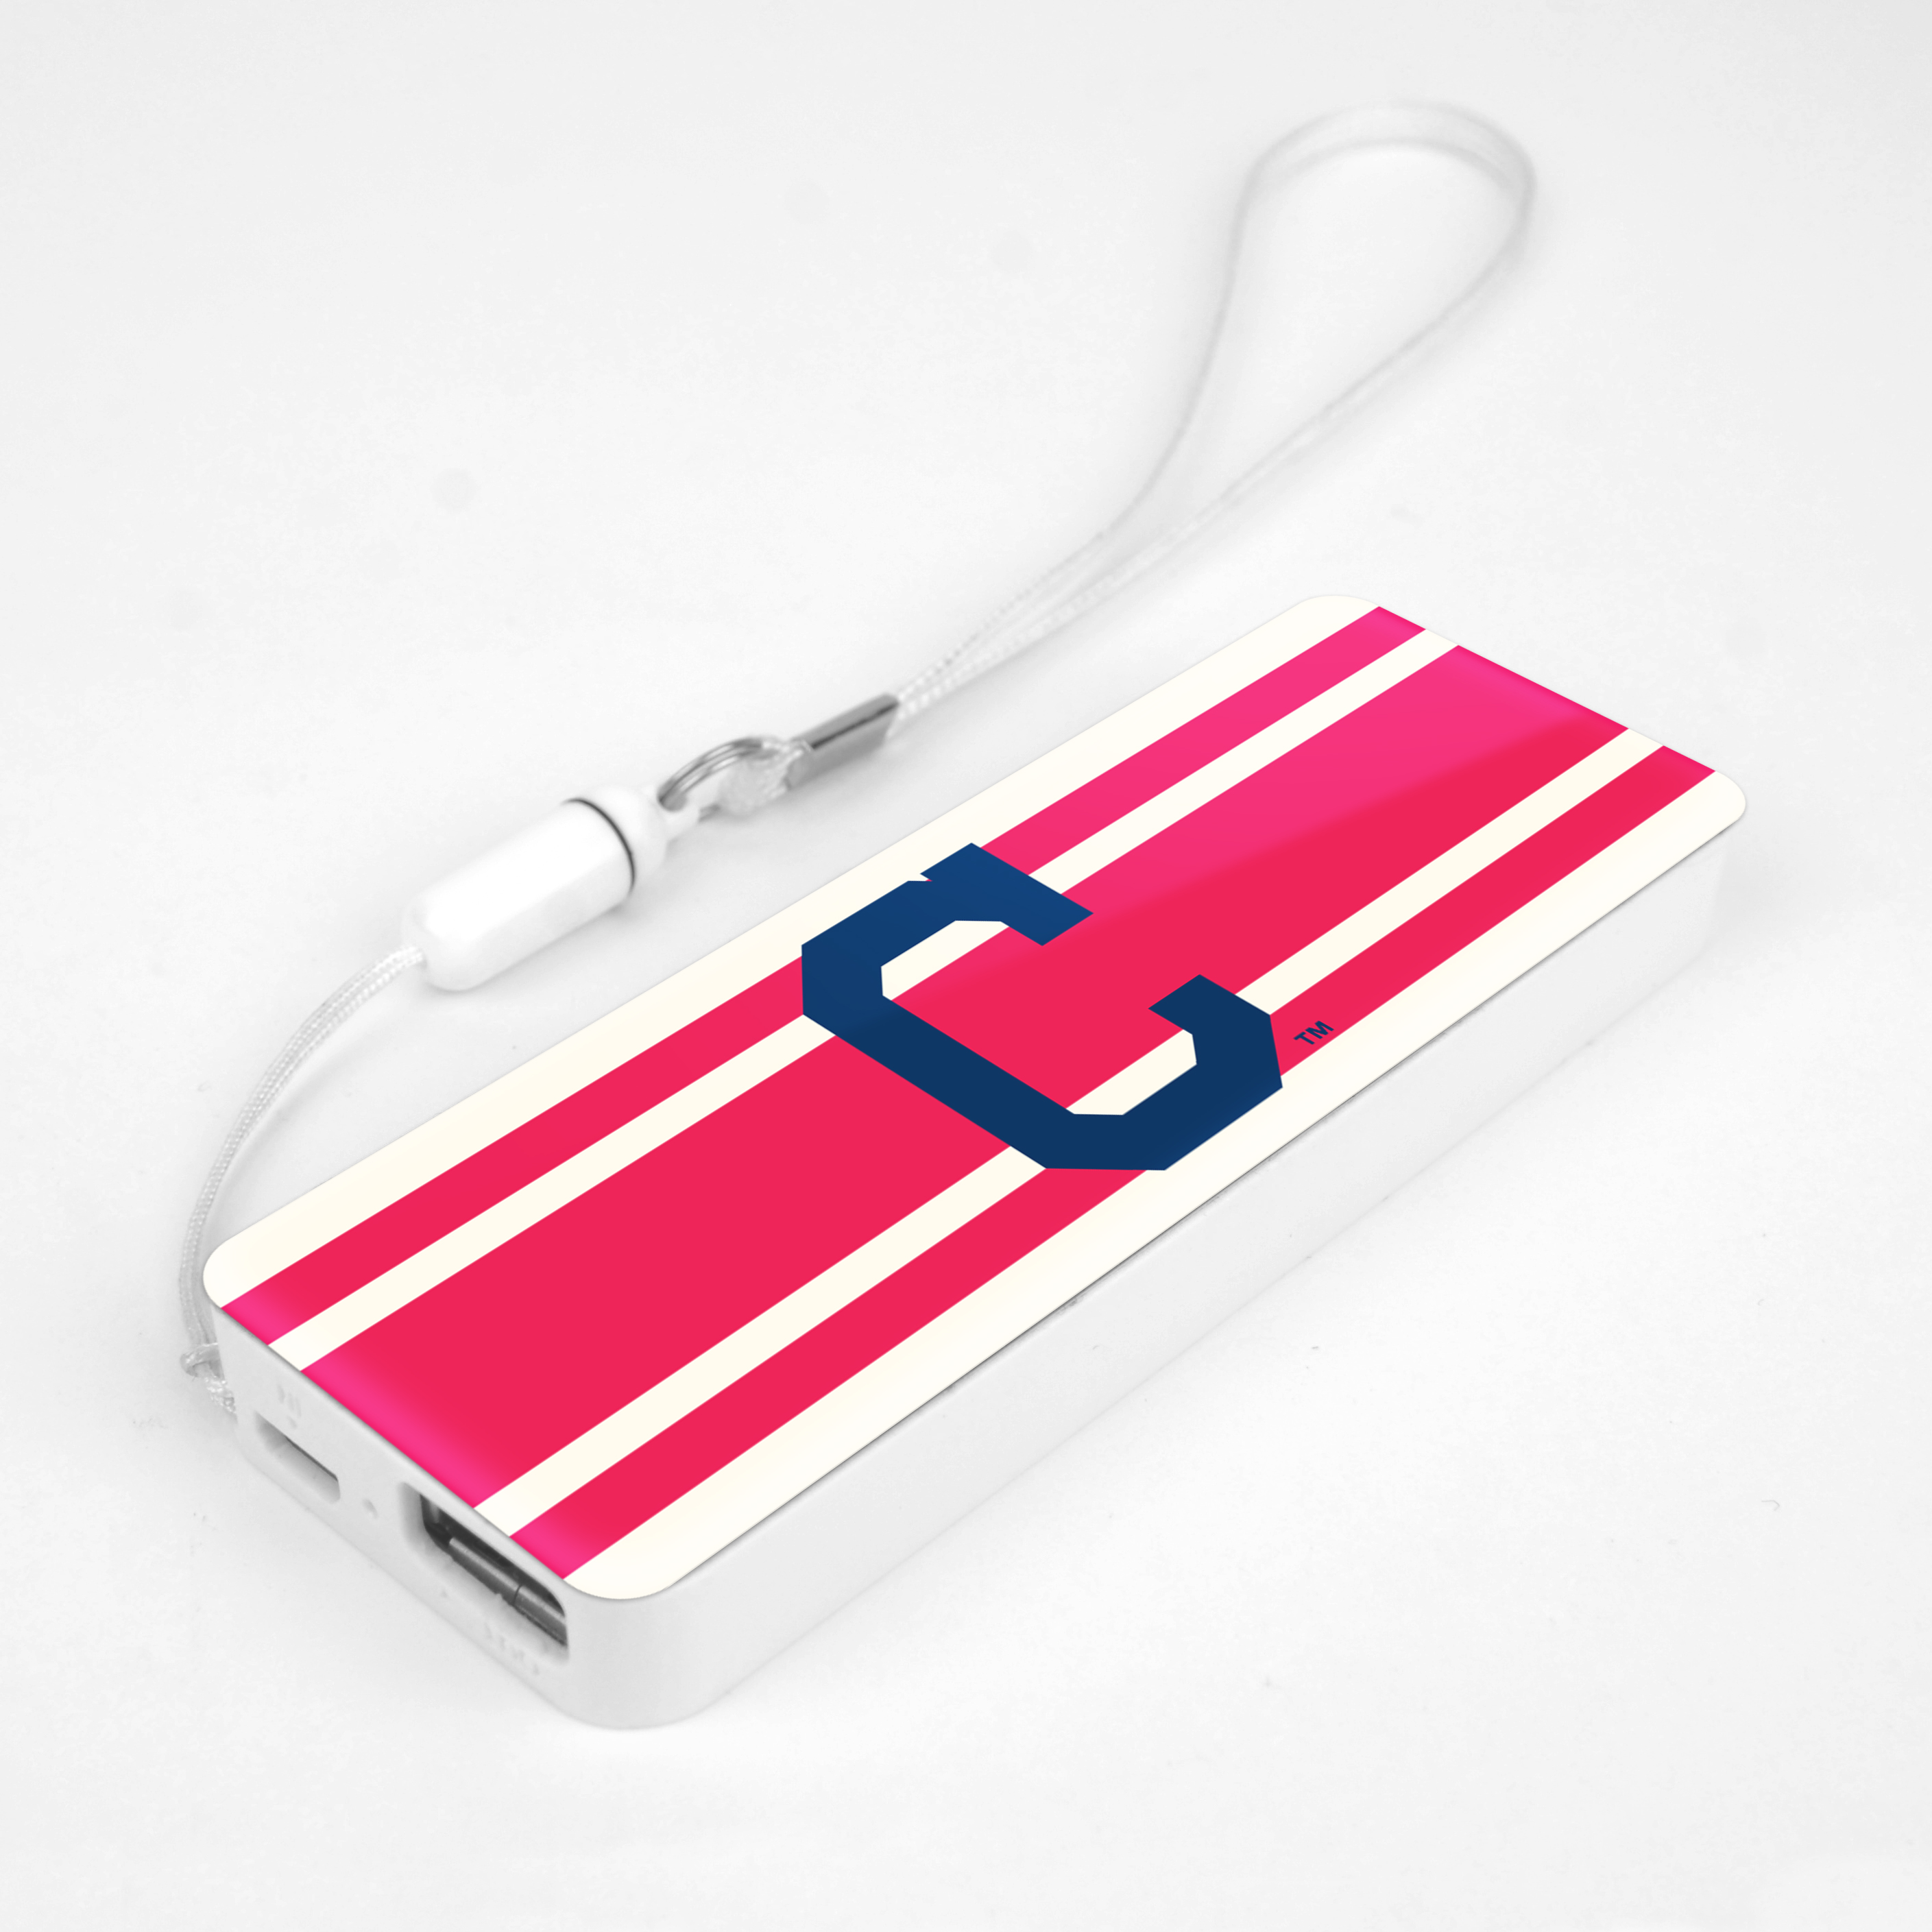 Cleveland Indians Powerbank - 3000 mAh by Mizco Sports